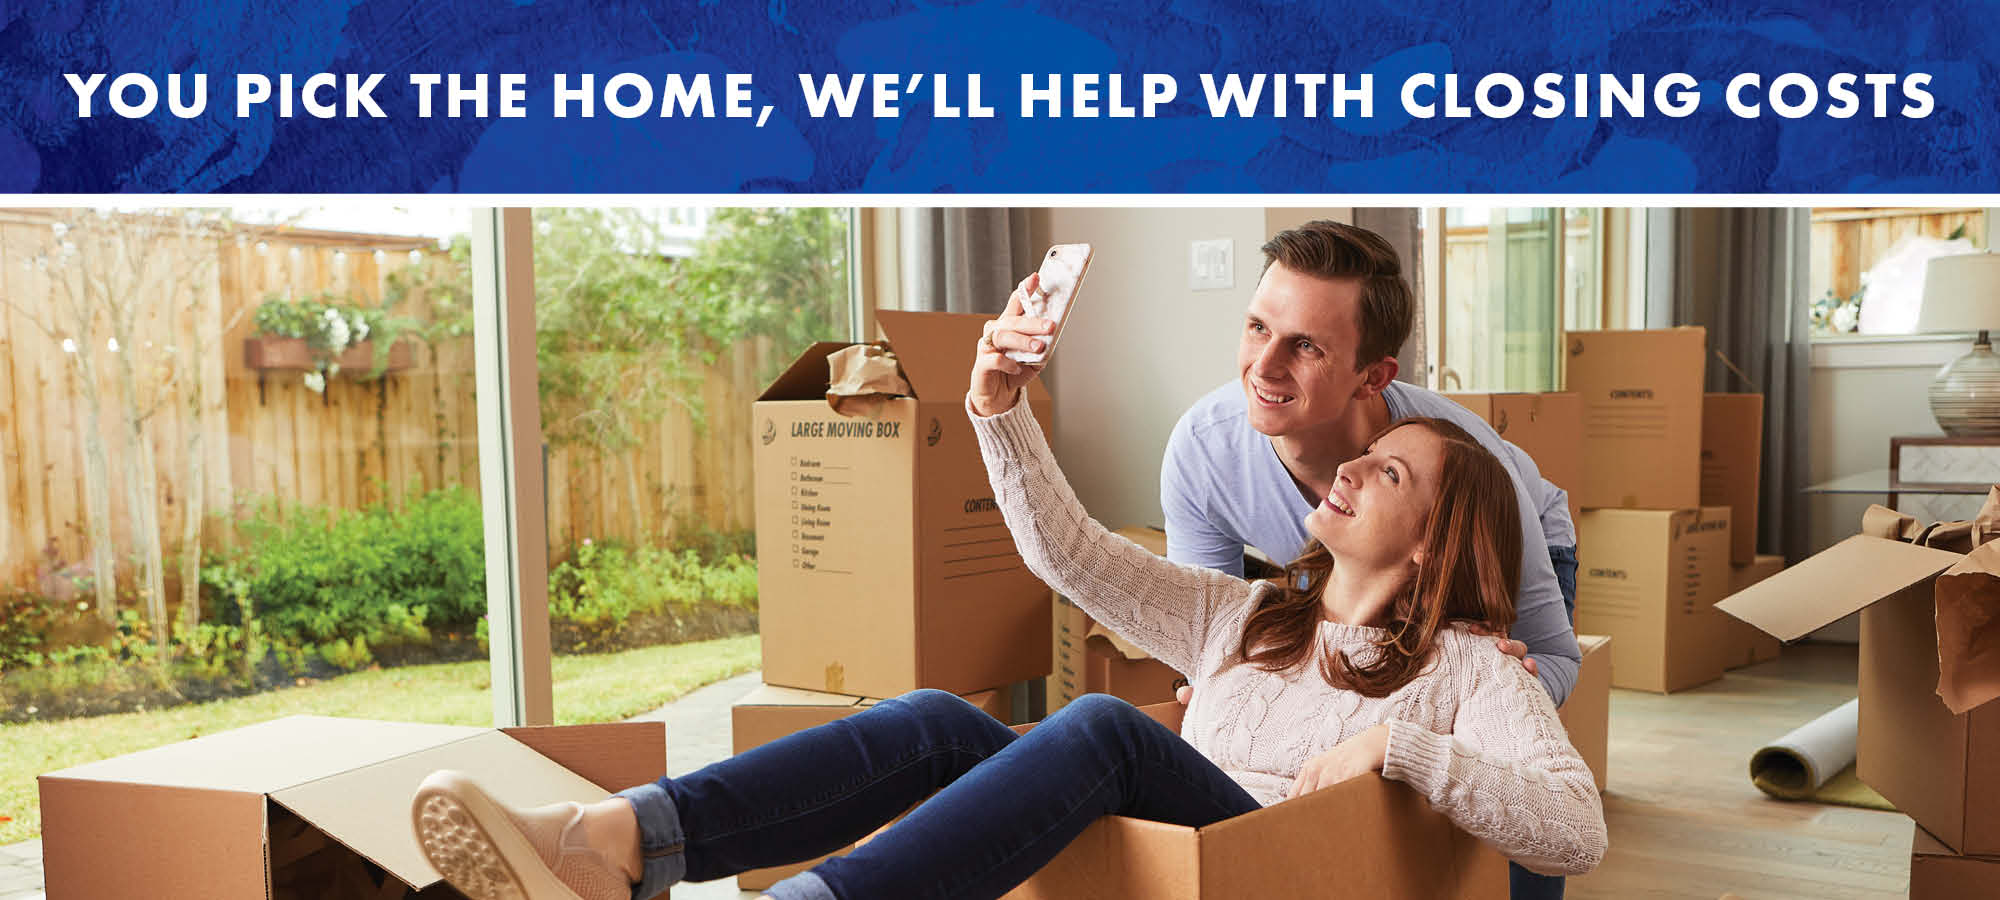 You Pick the Home, We'll Help with Closing Costs